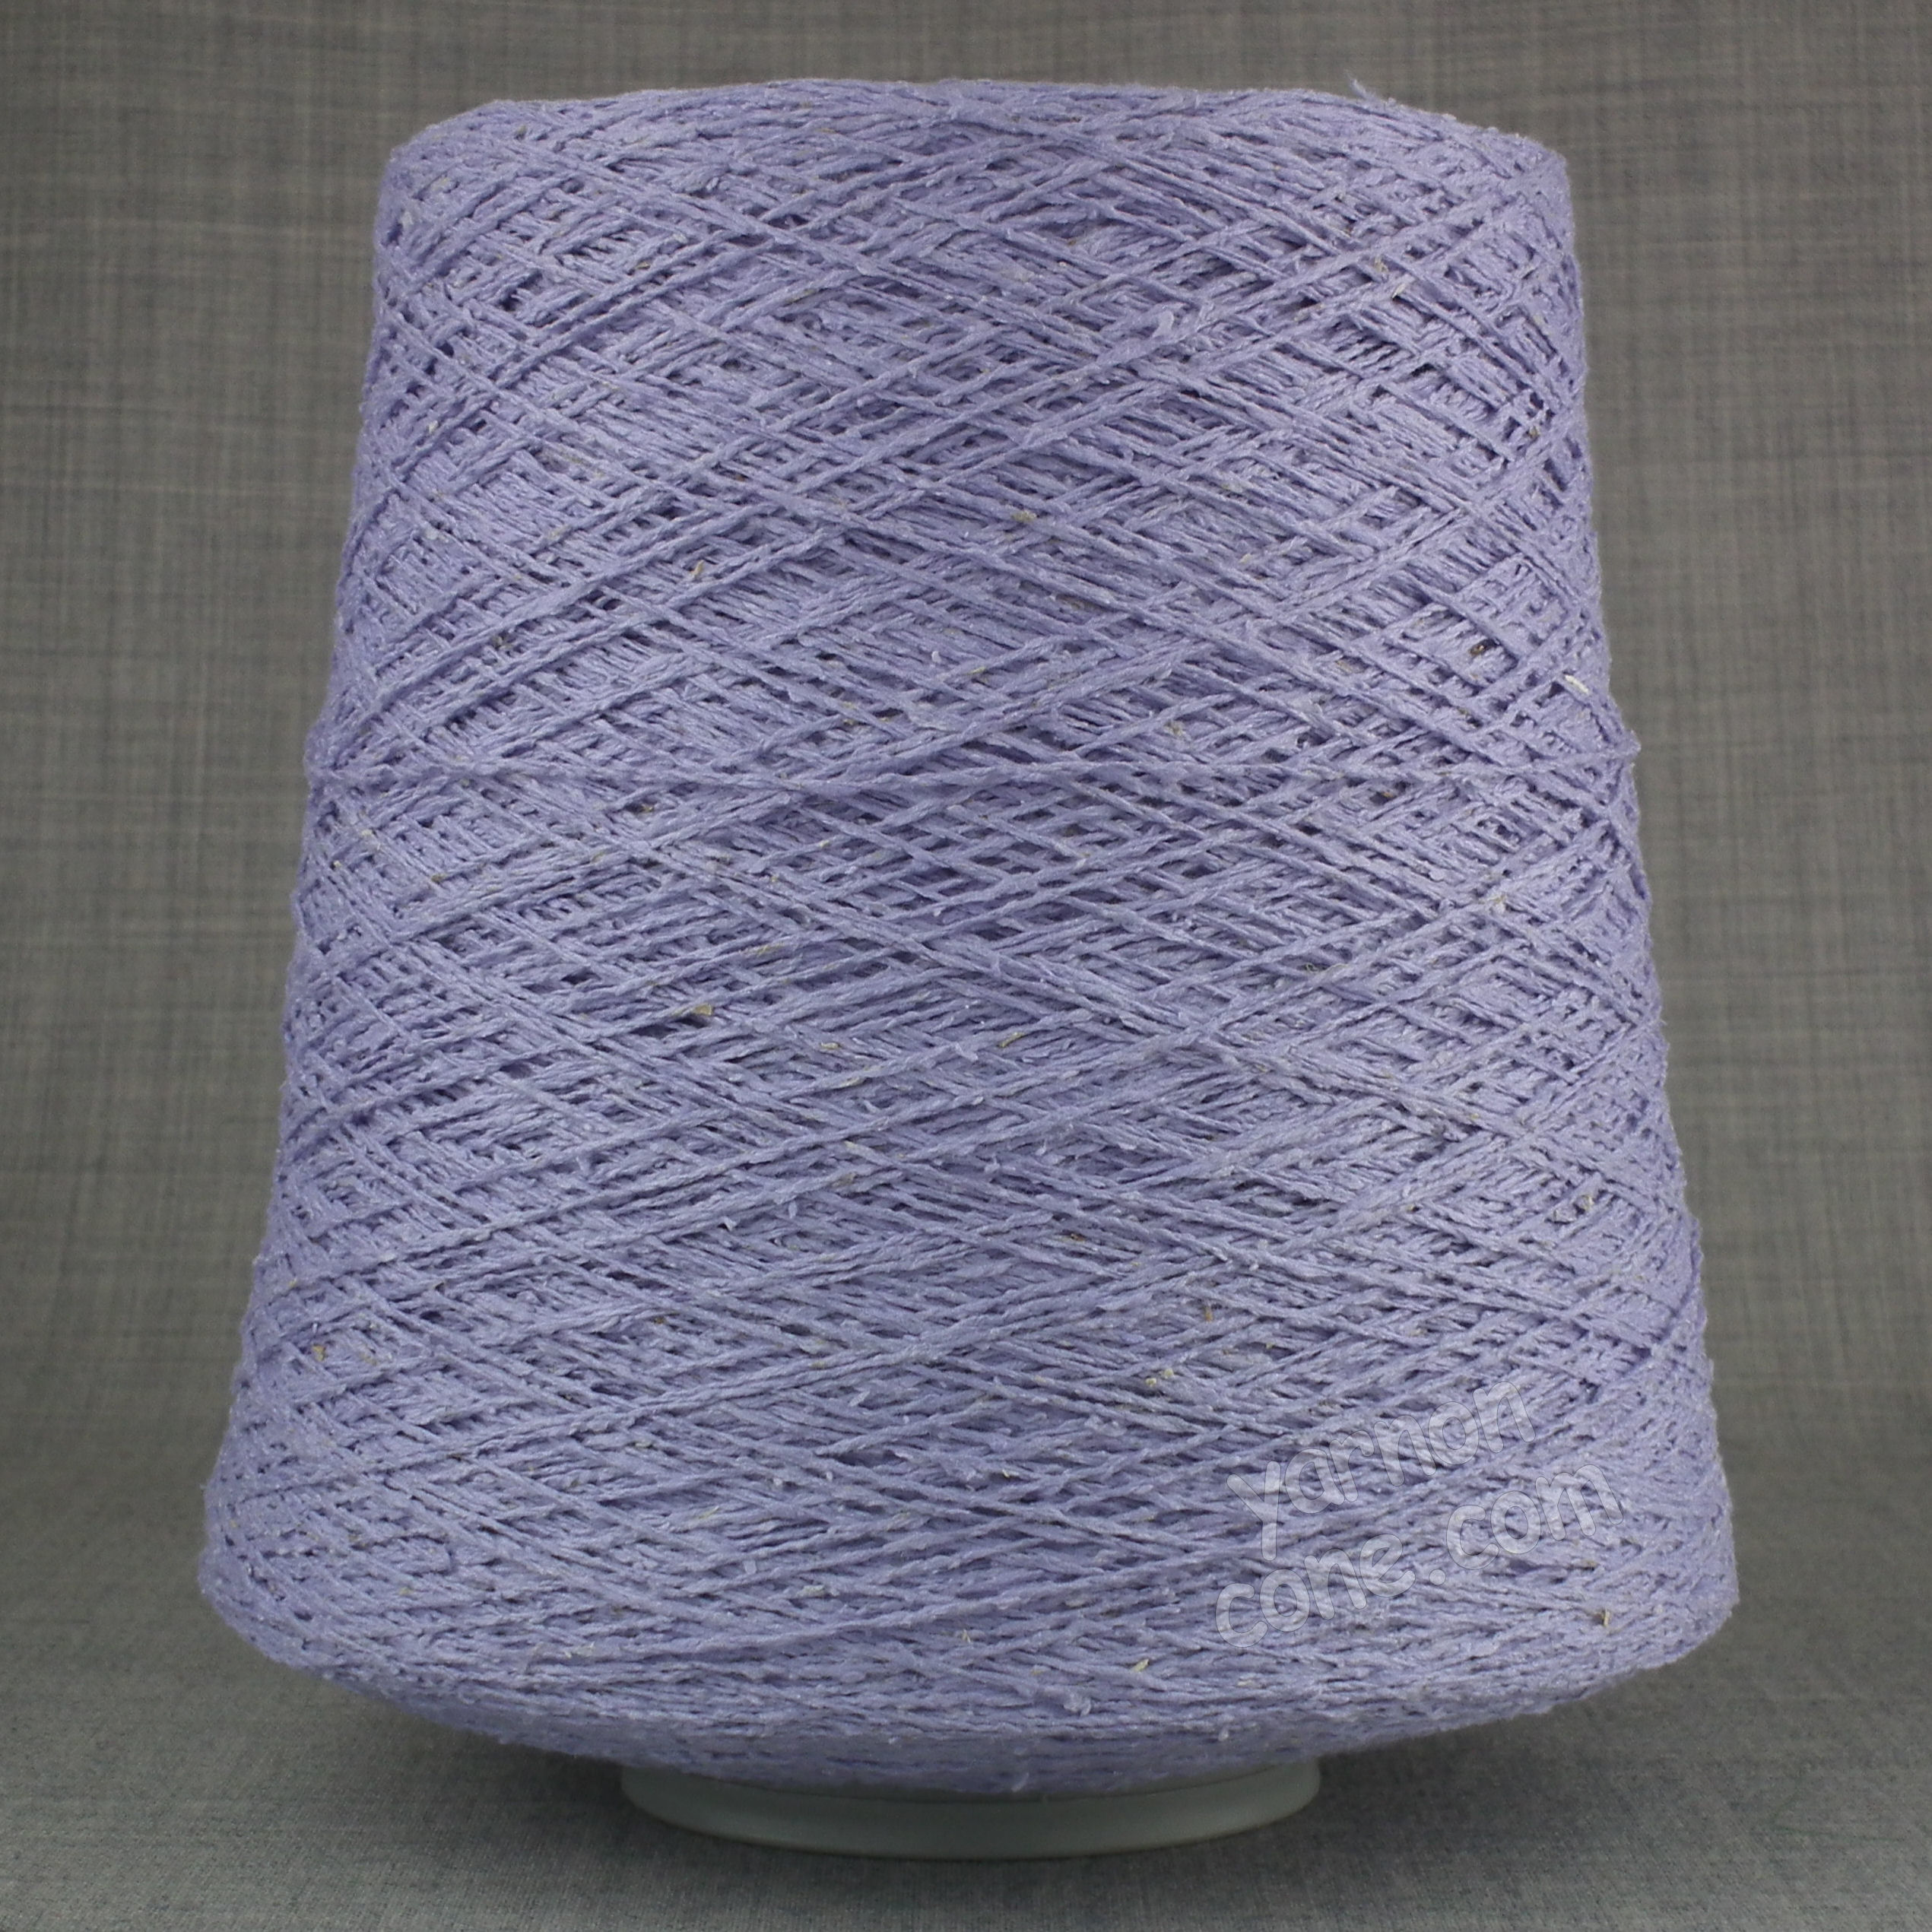 silk noil yarn on cone machine knitting yarn weaving rustic pure lilac lavender